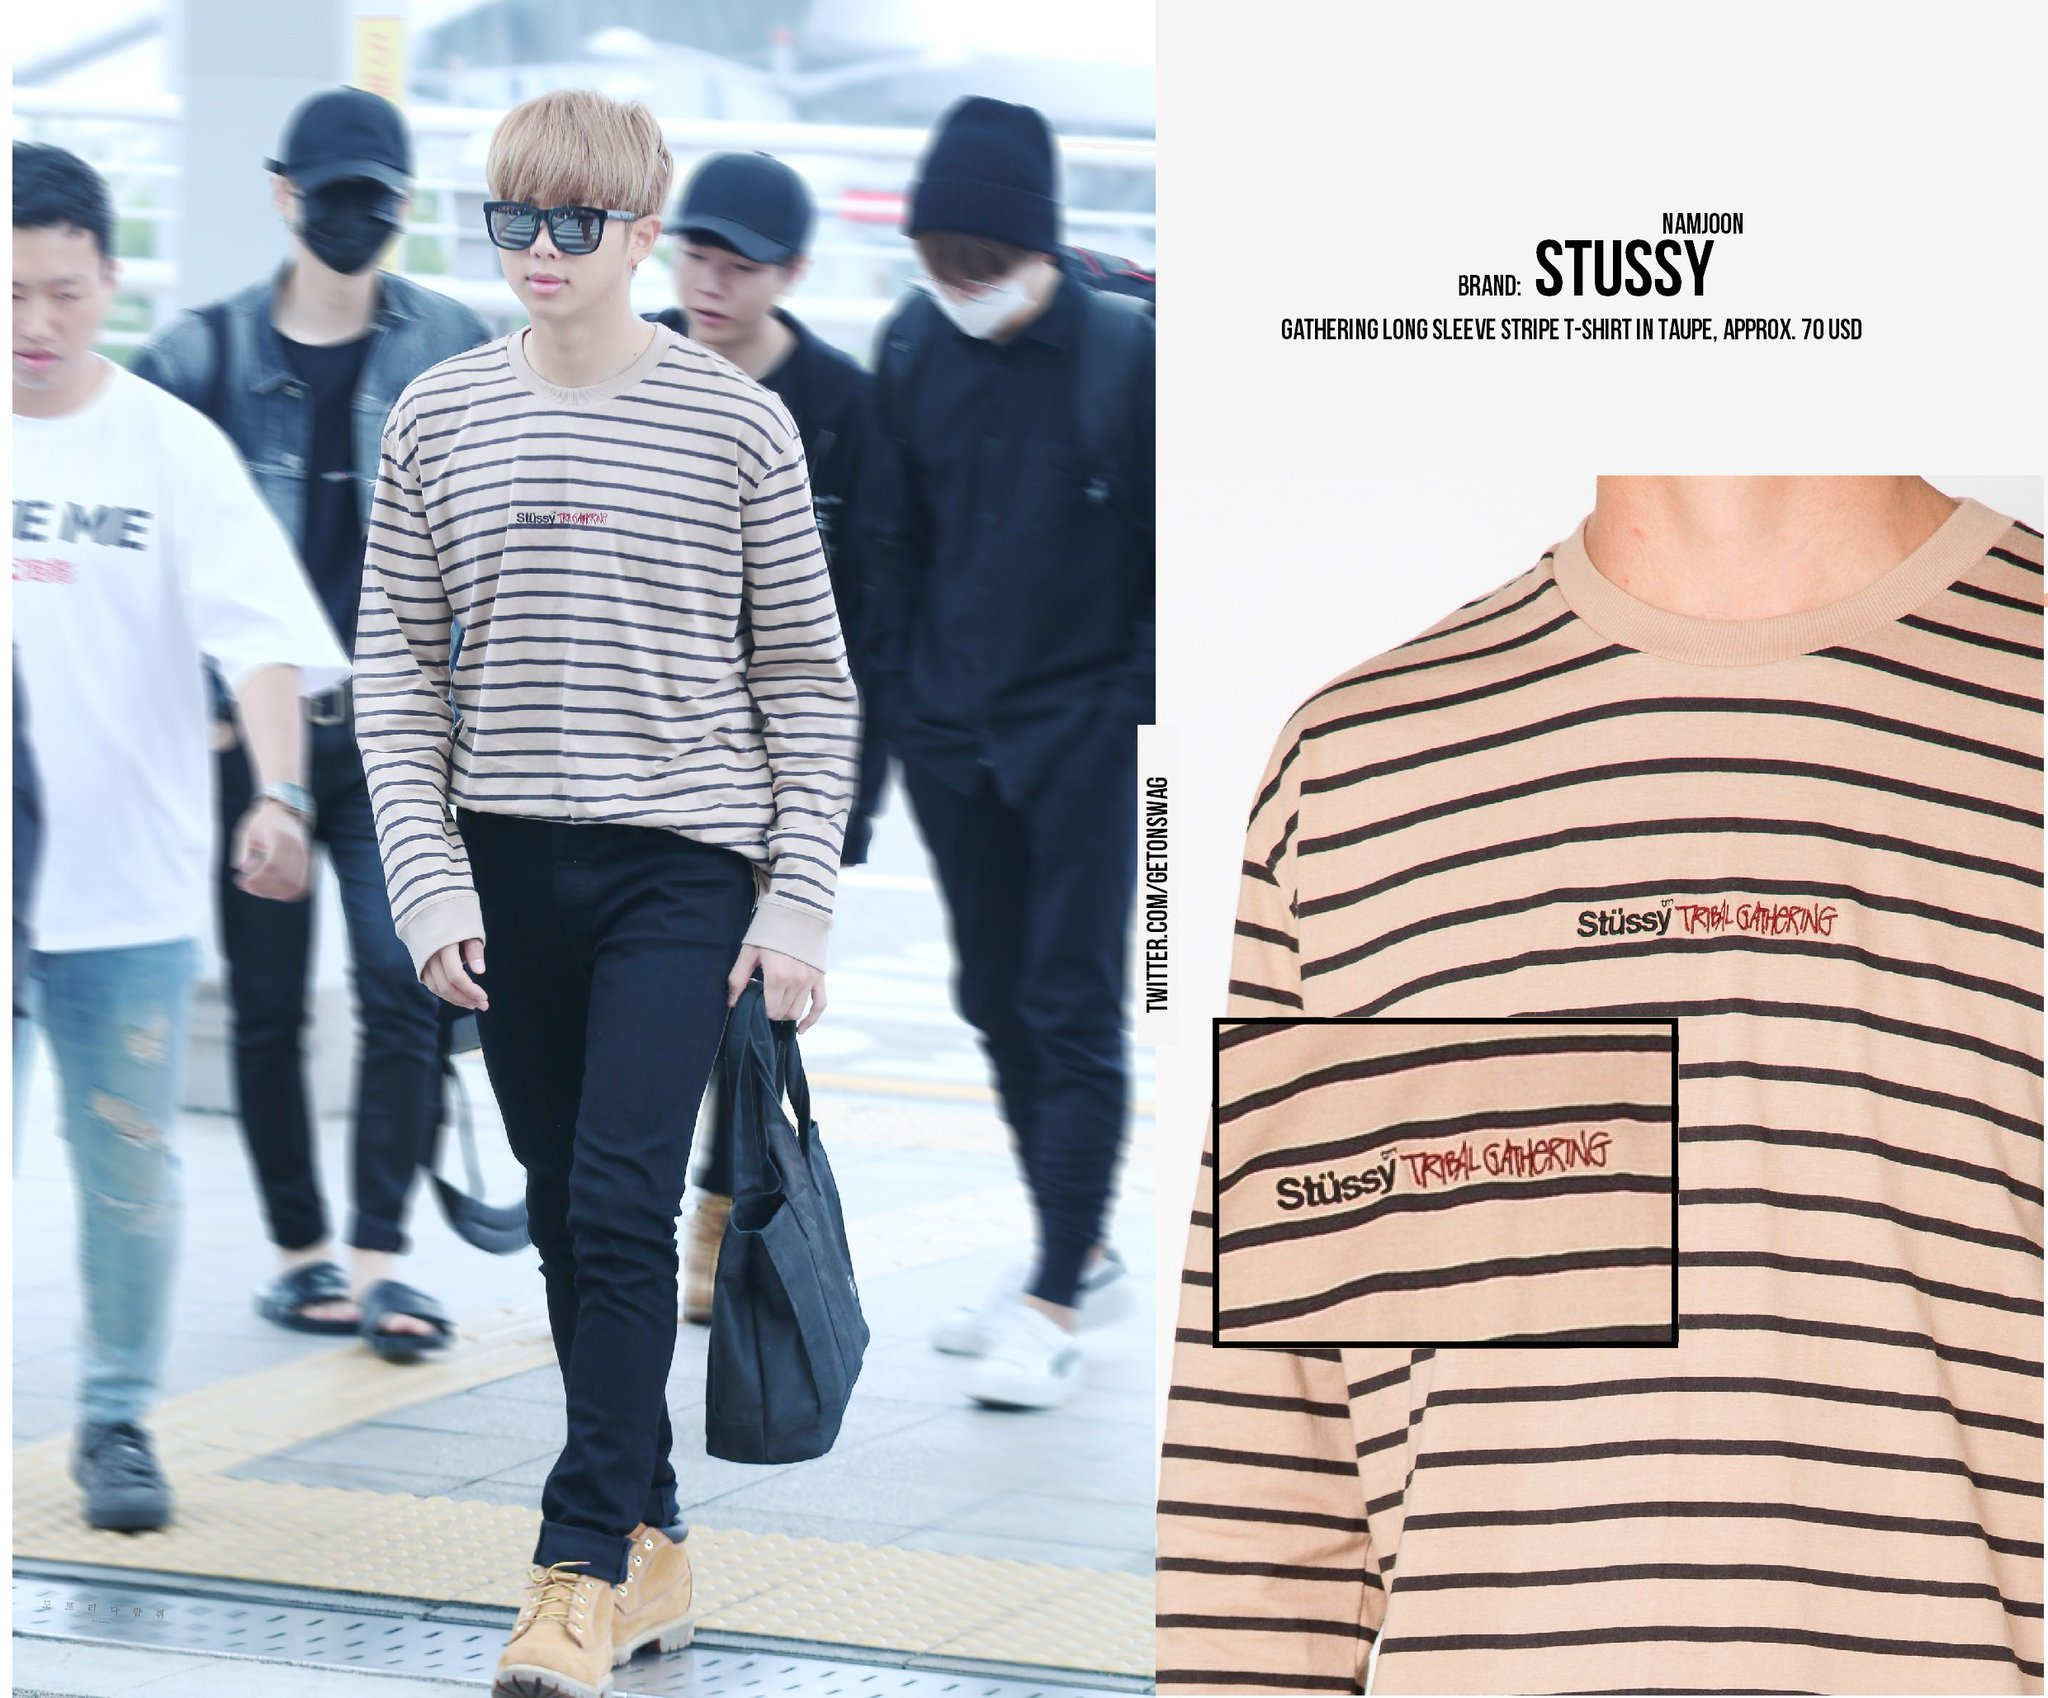 Beyond The Style On Twitter Namjoon Bts 170614 Airport 170613 Bts Twt Rapmonster